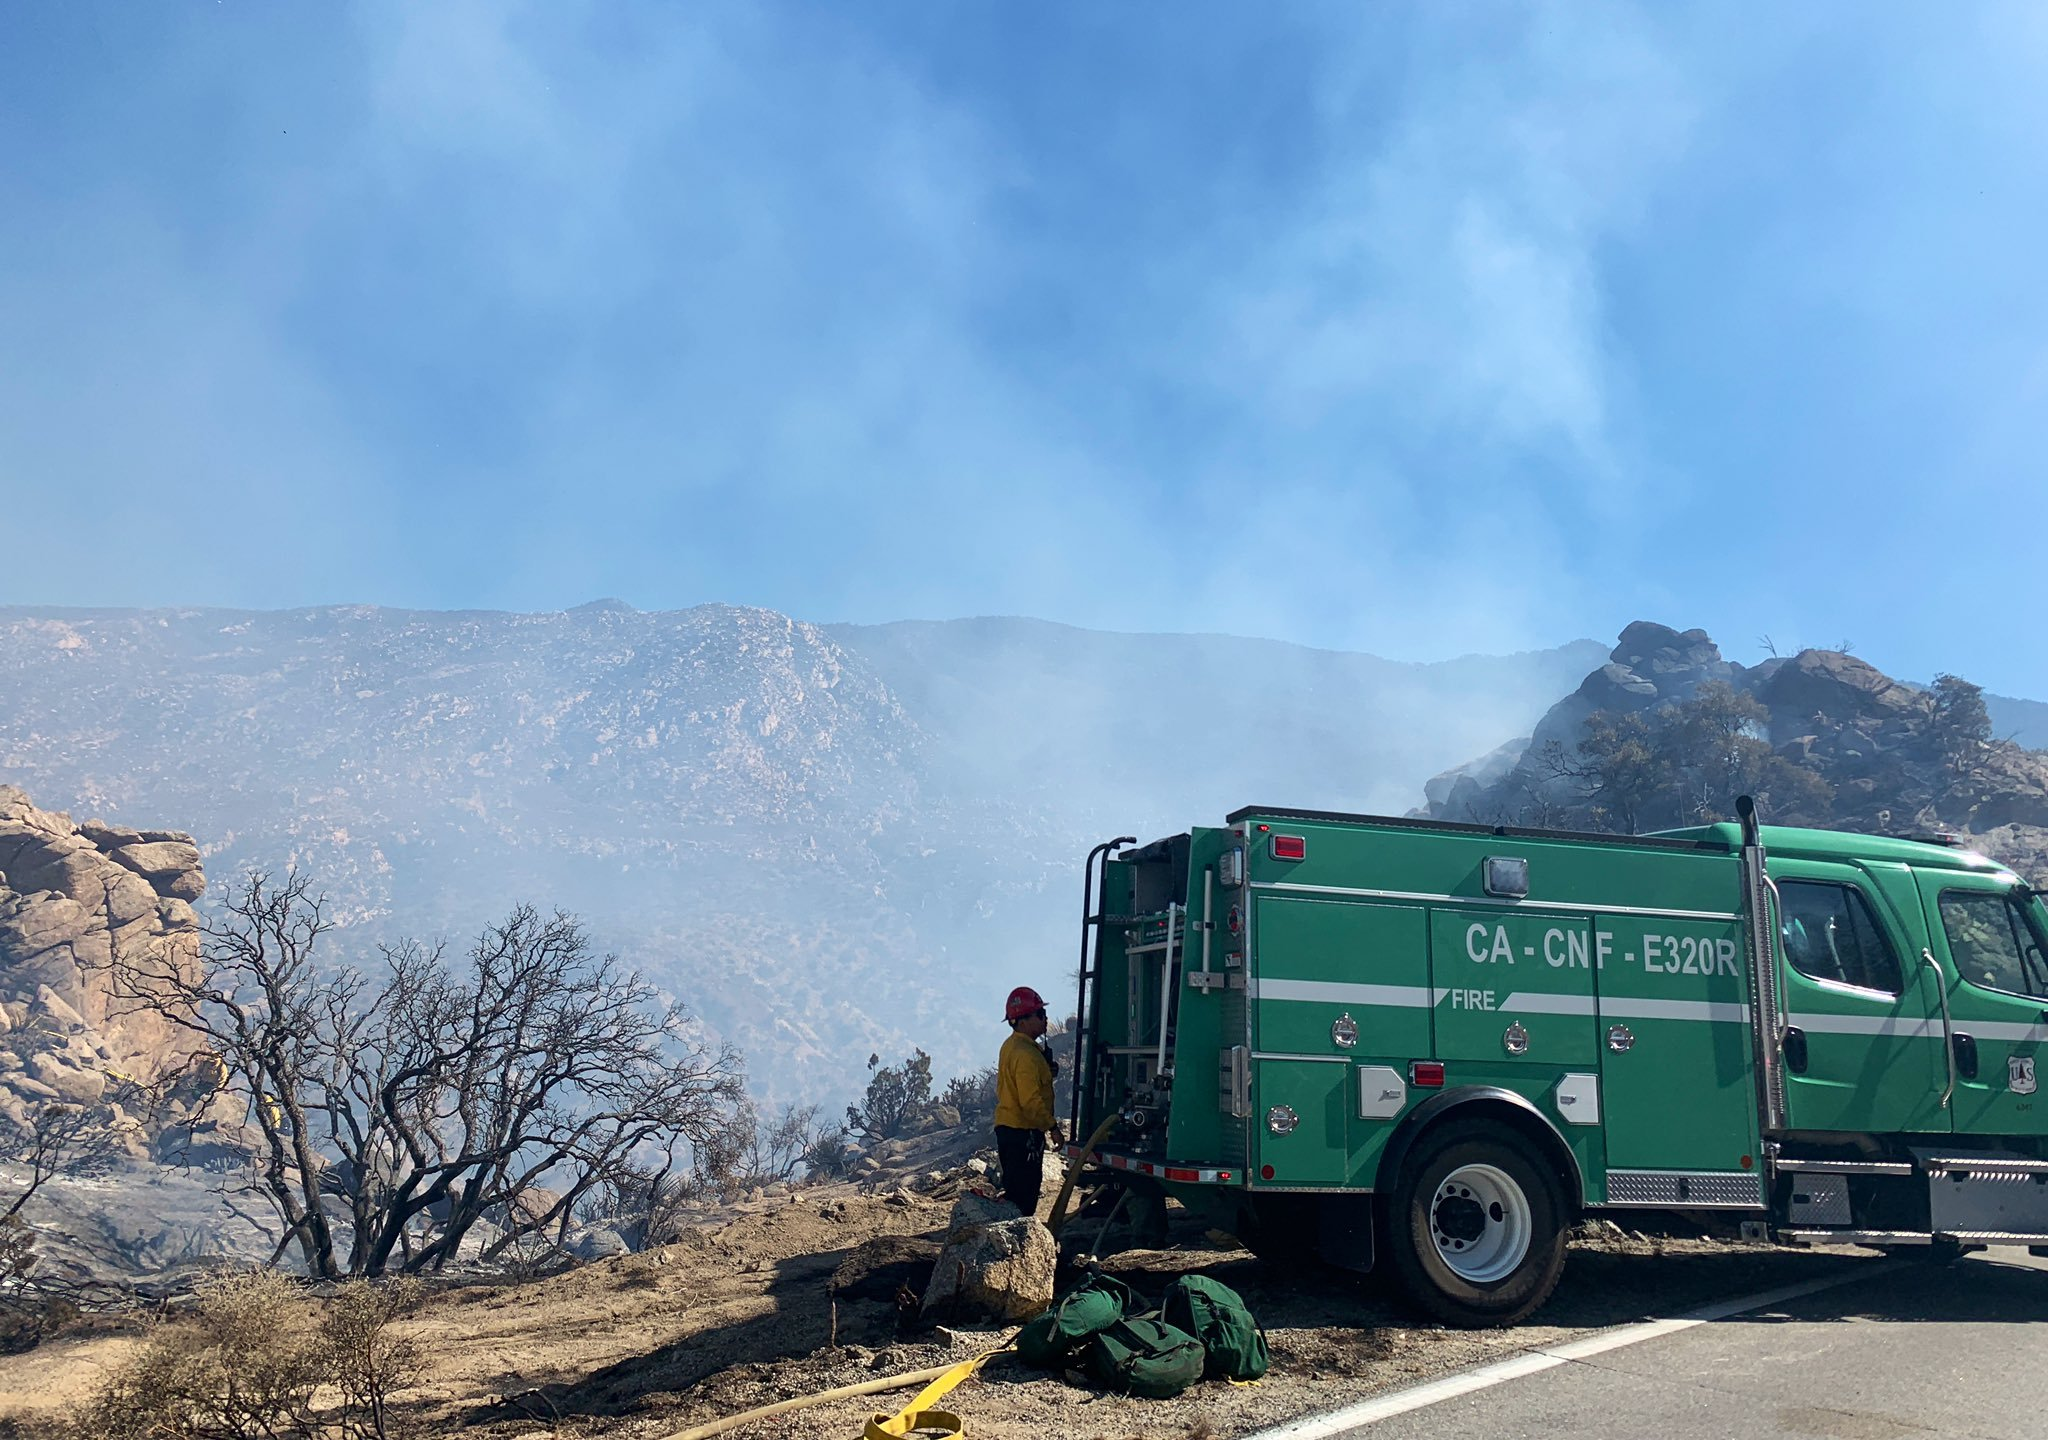 A firefighter standing next to a vehicle near the Flats Fire in Riverside County on June 14, 2021. (San Bernardino National Forest)